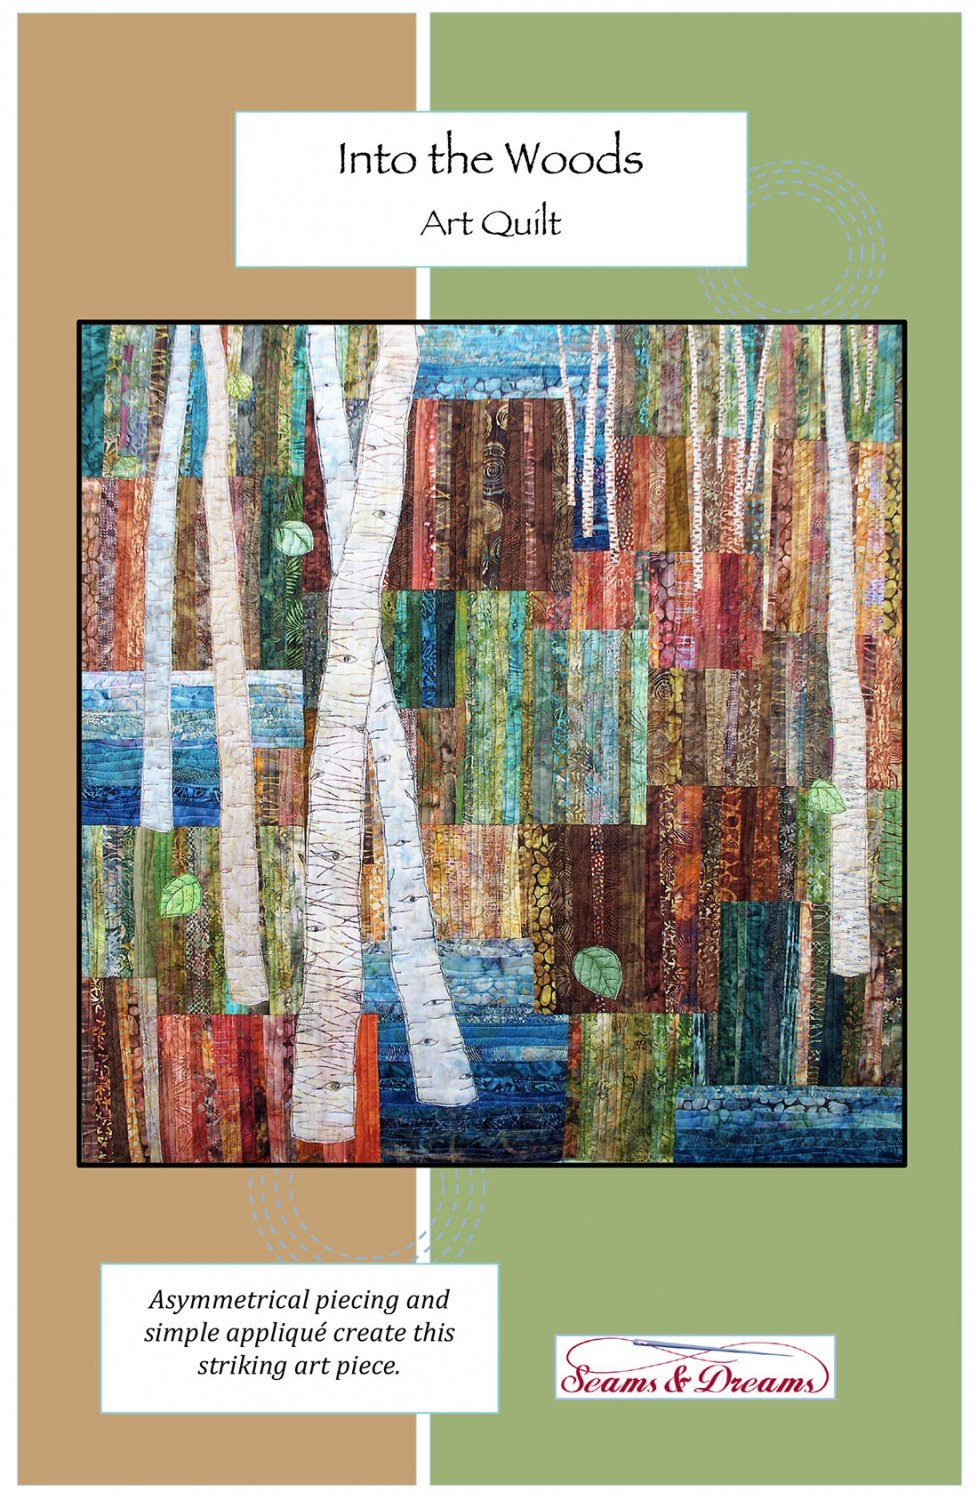 Into the Woods Art Quilt